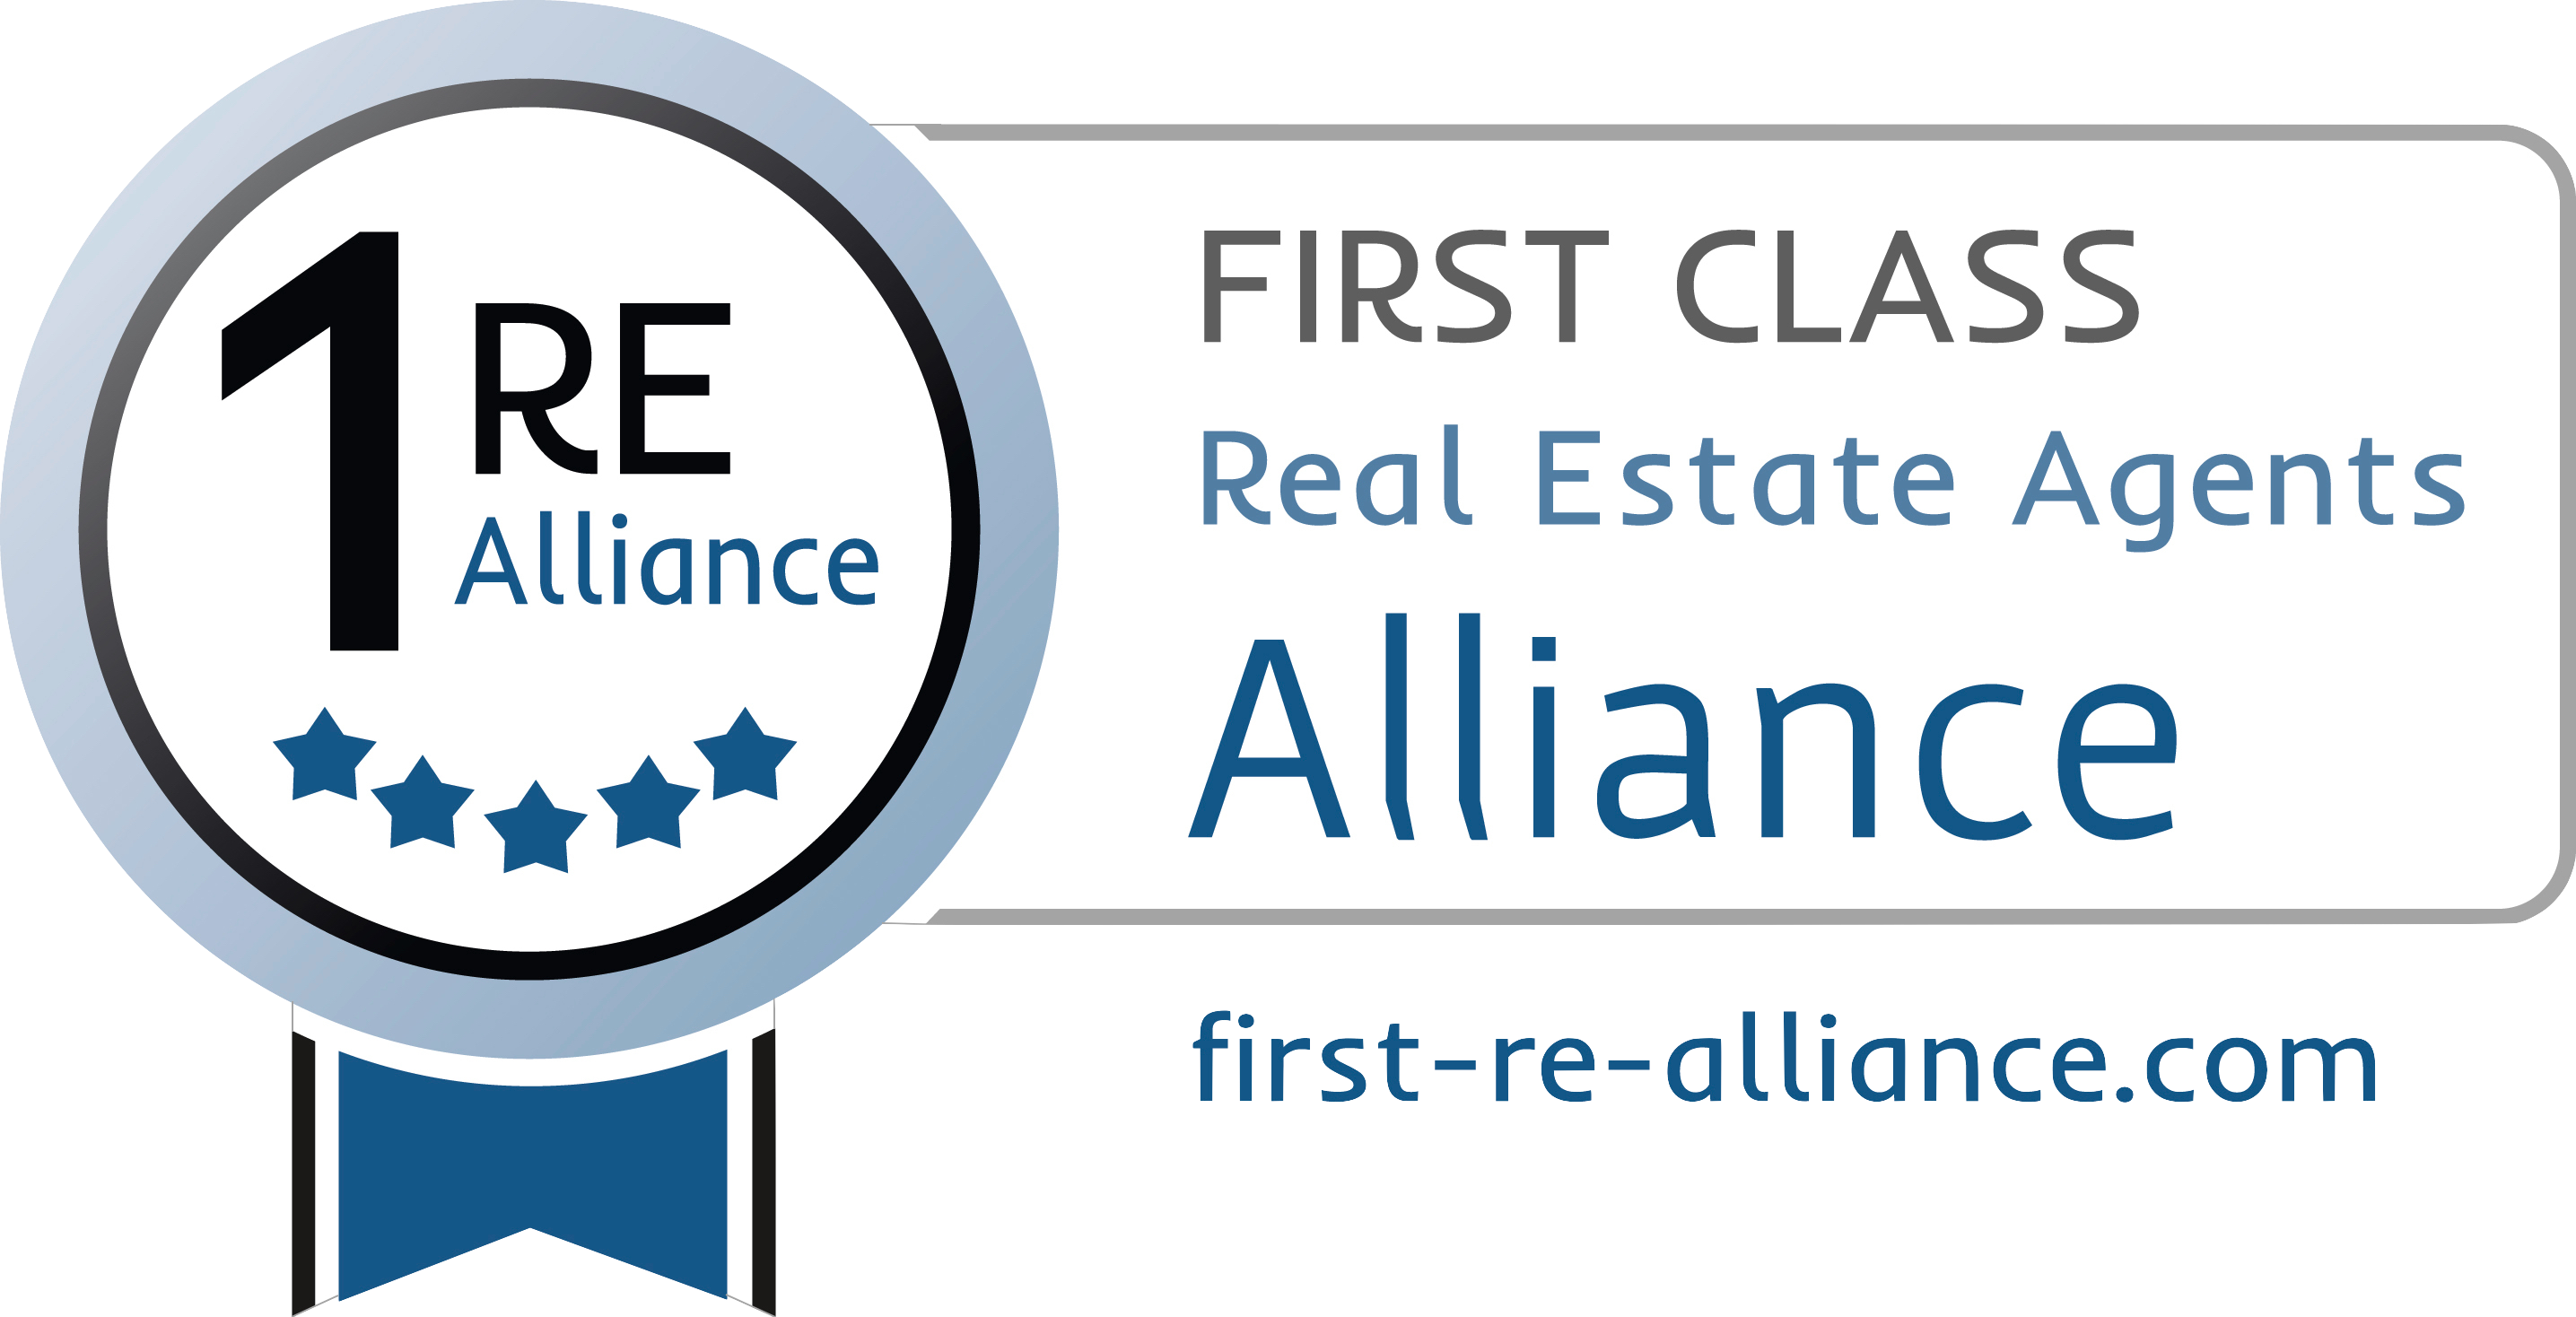 Logo der First Re Alliance